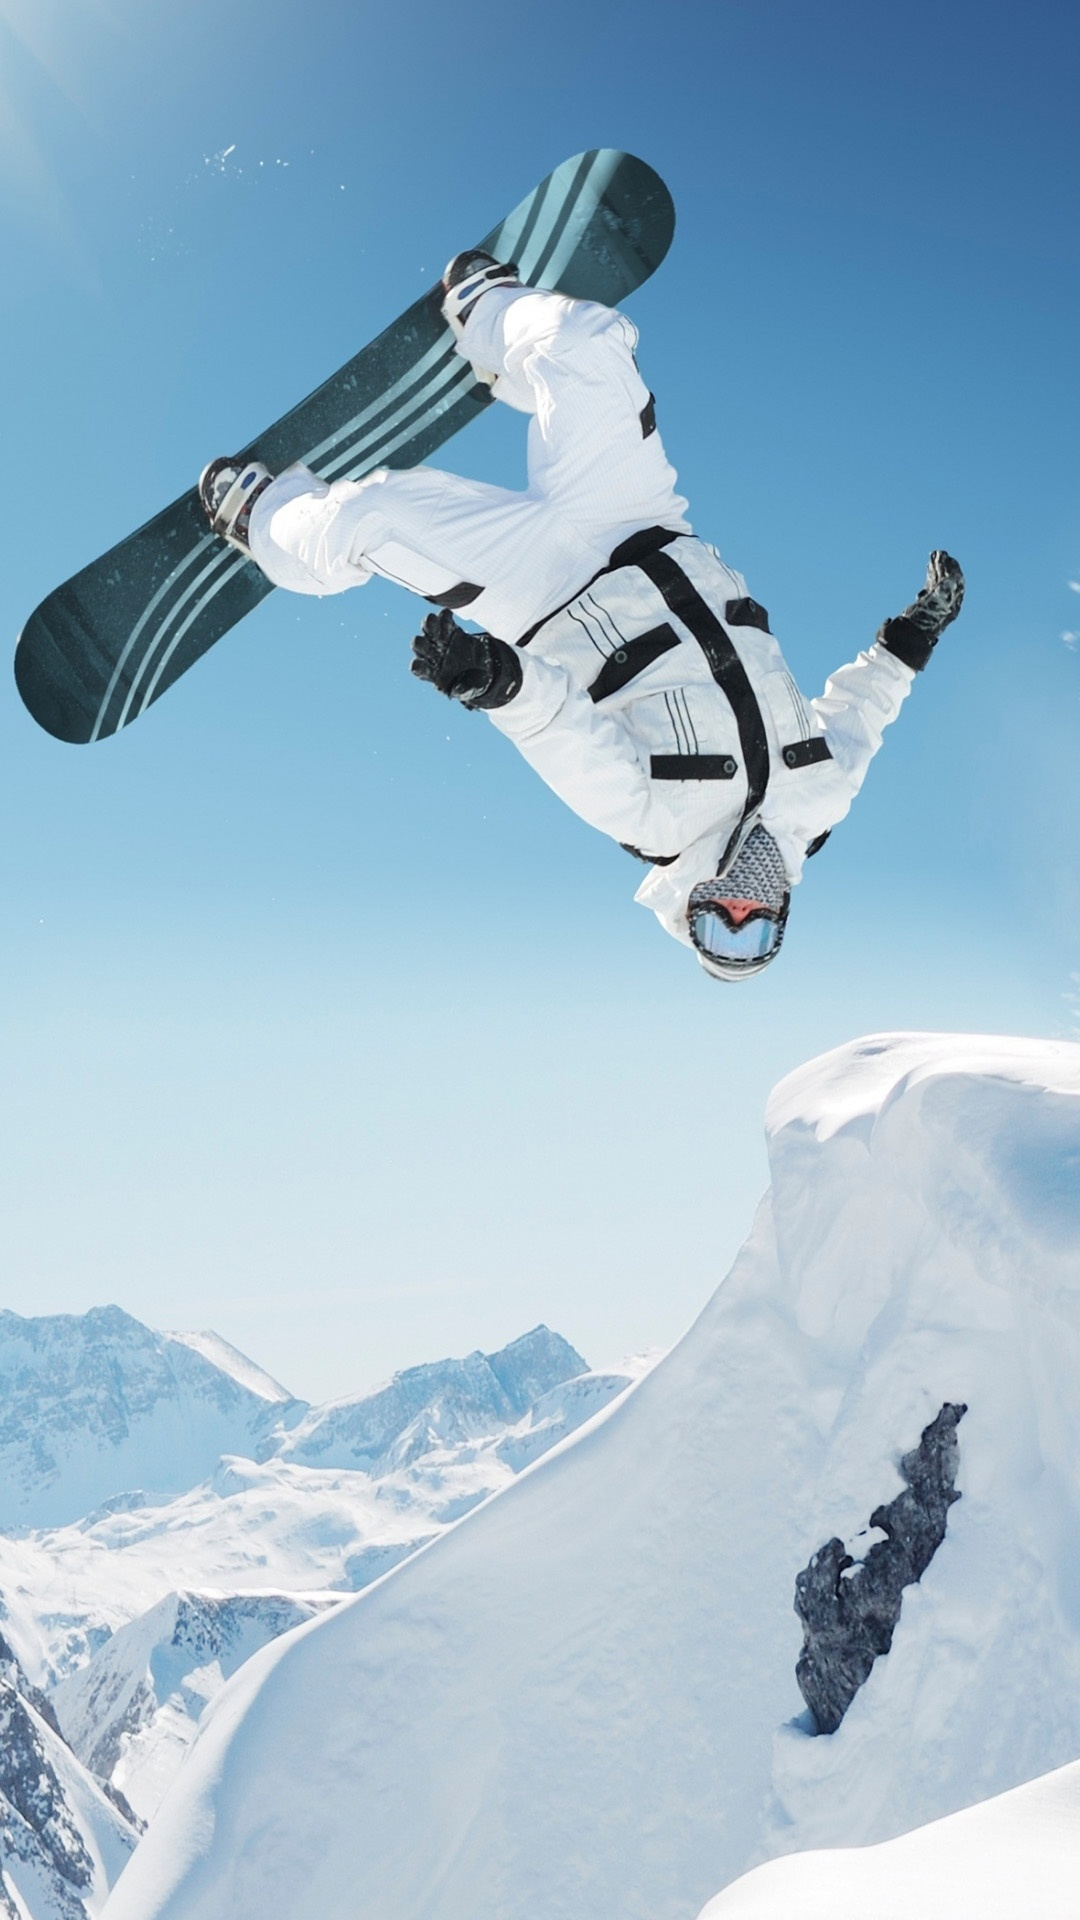 extreme snowboarding wallpapers - photo #9